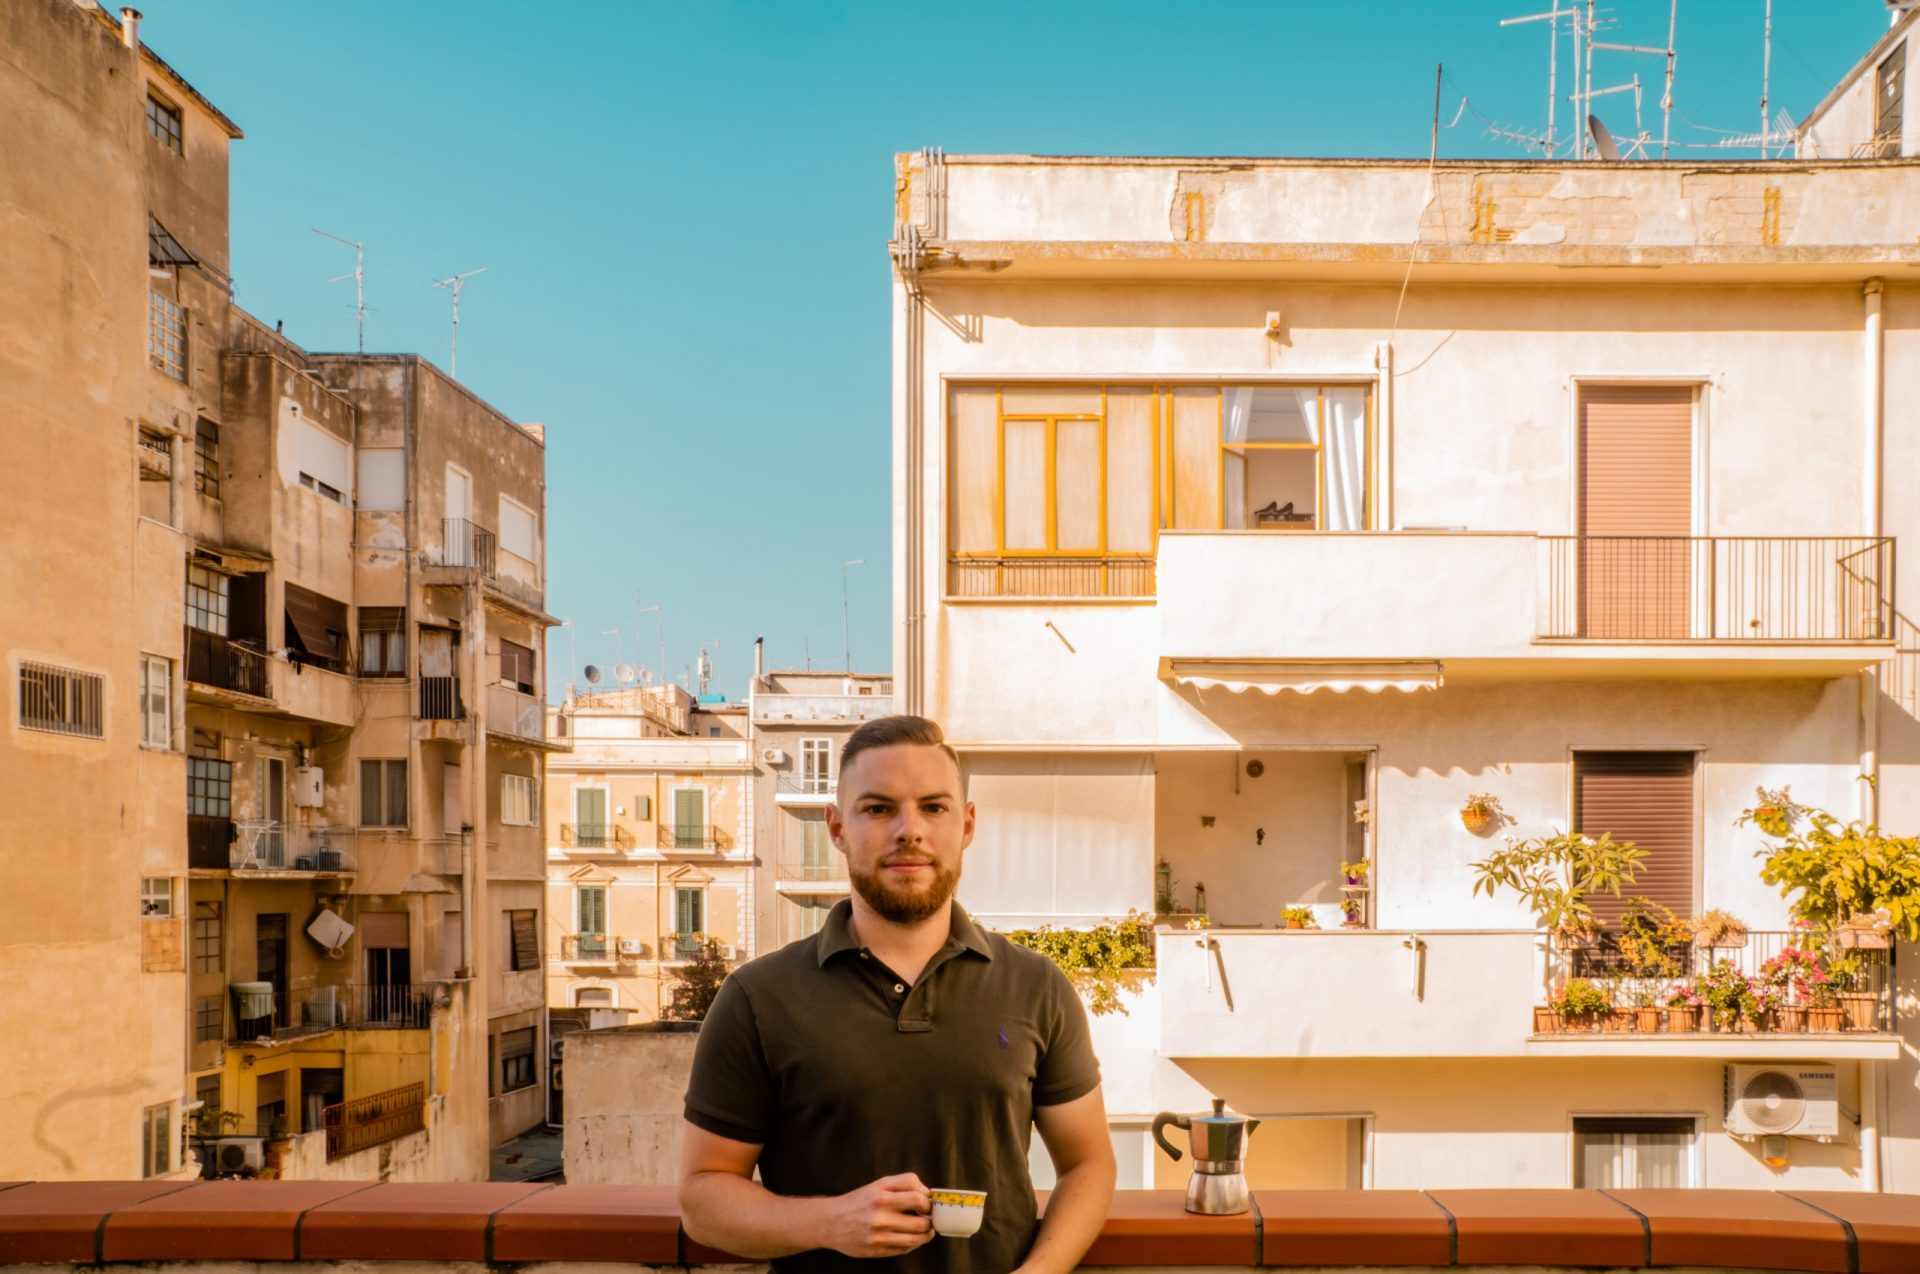 Jack Roaming about pic - Balcony in Reggio Calabria, Italy